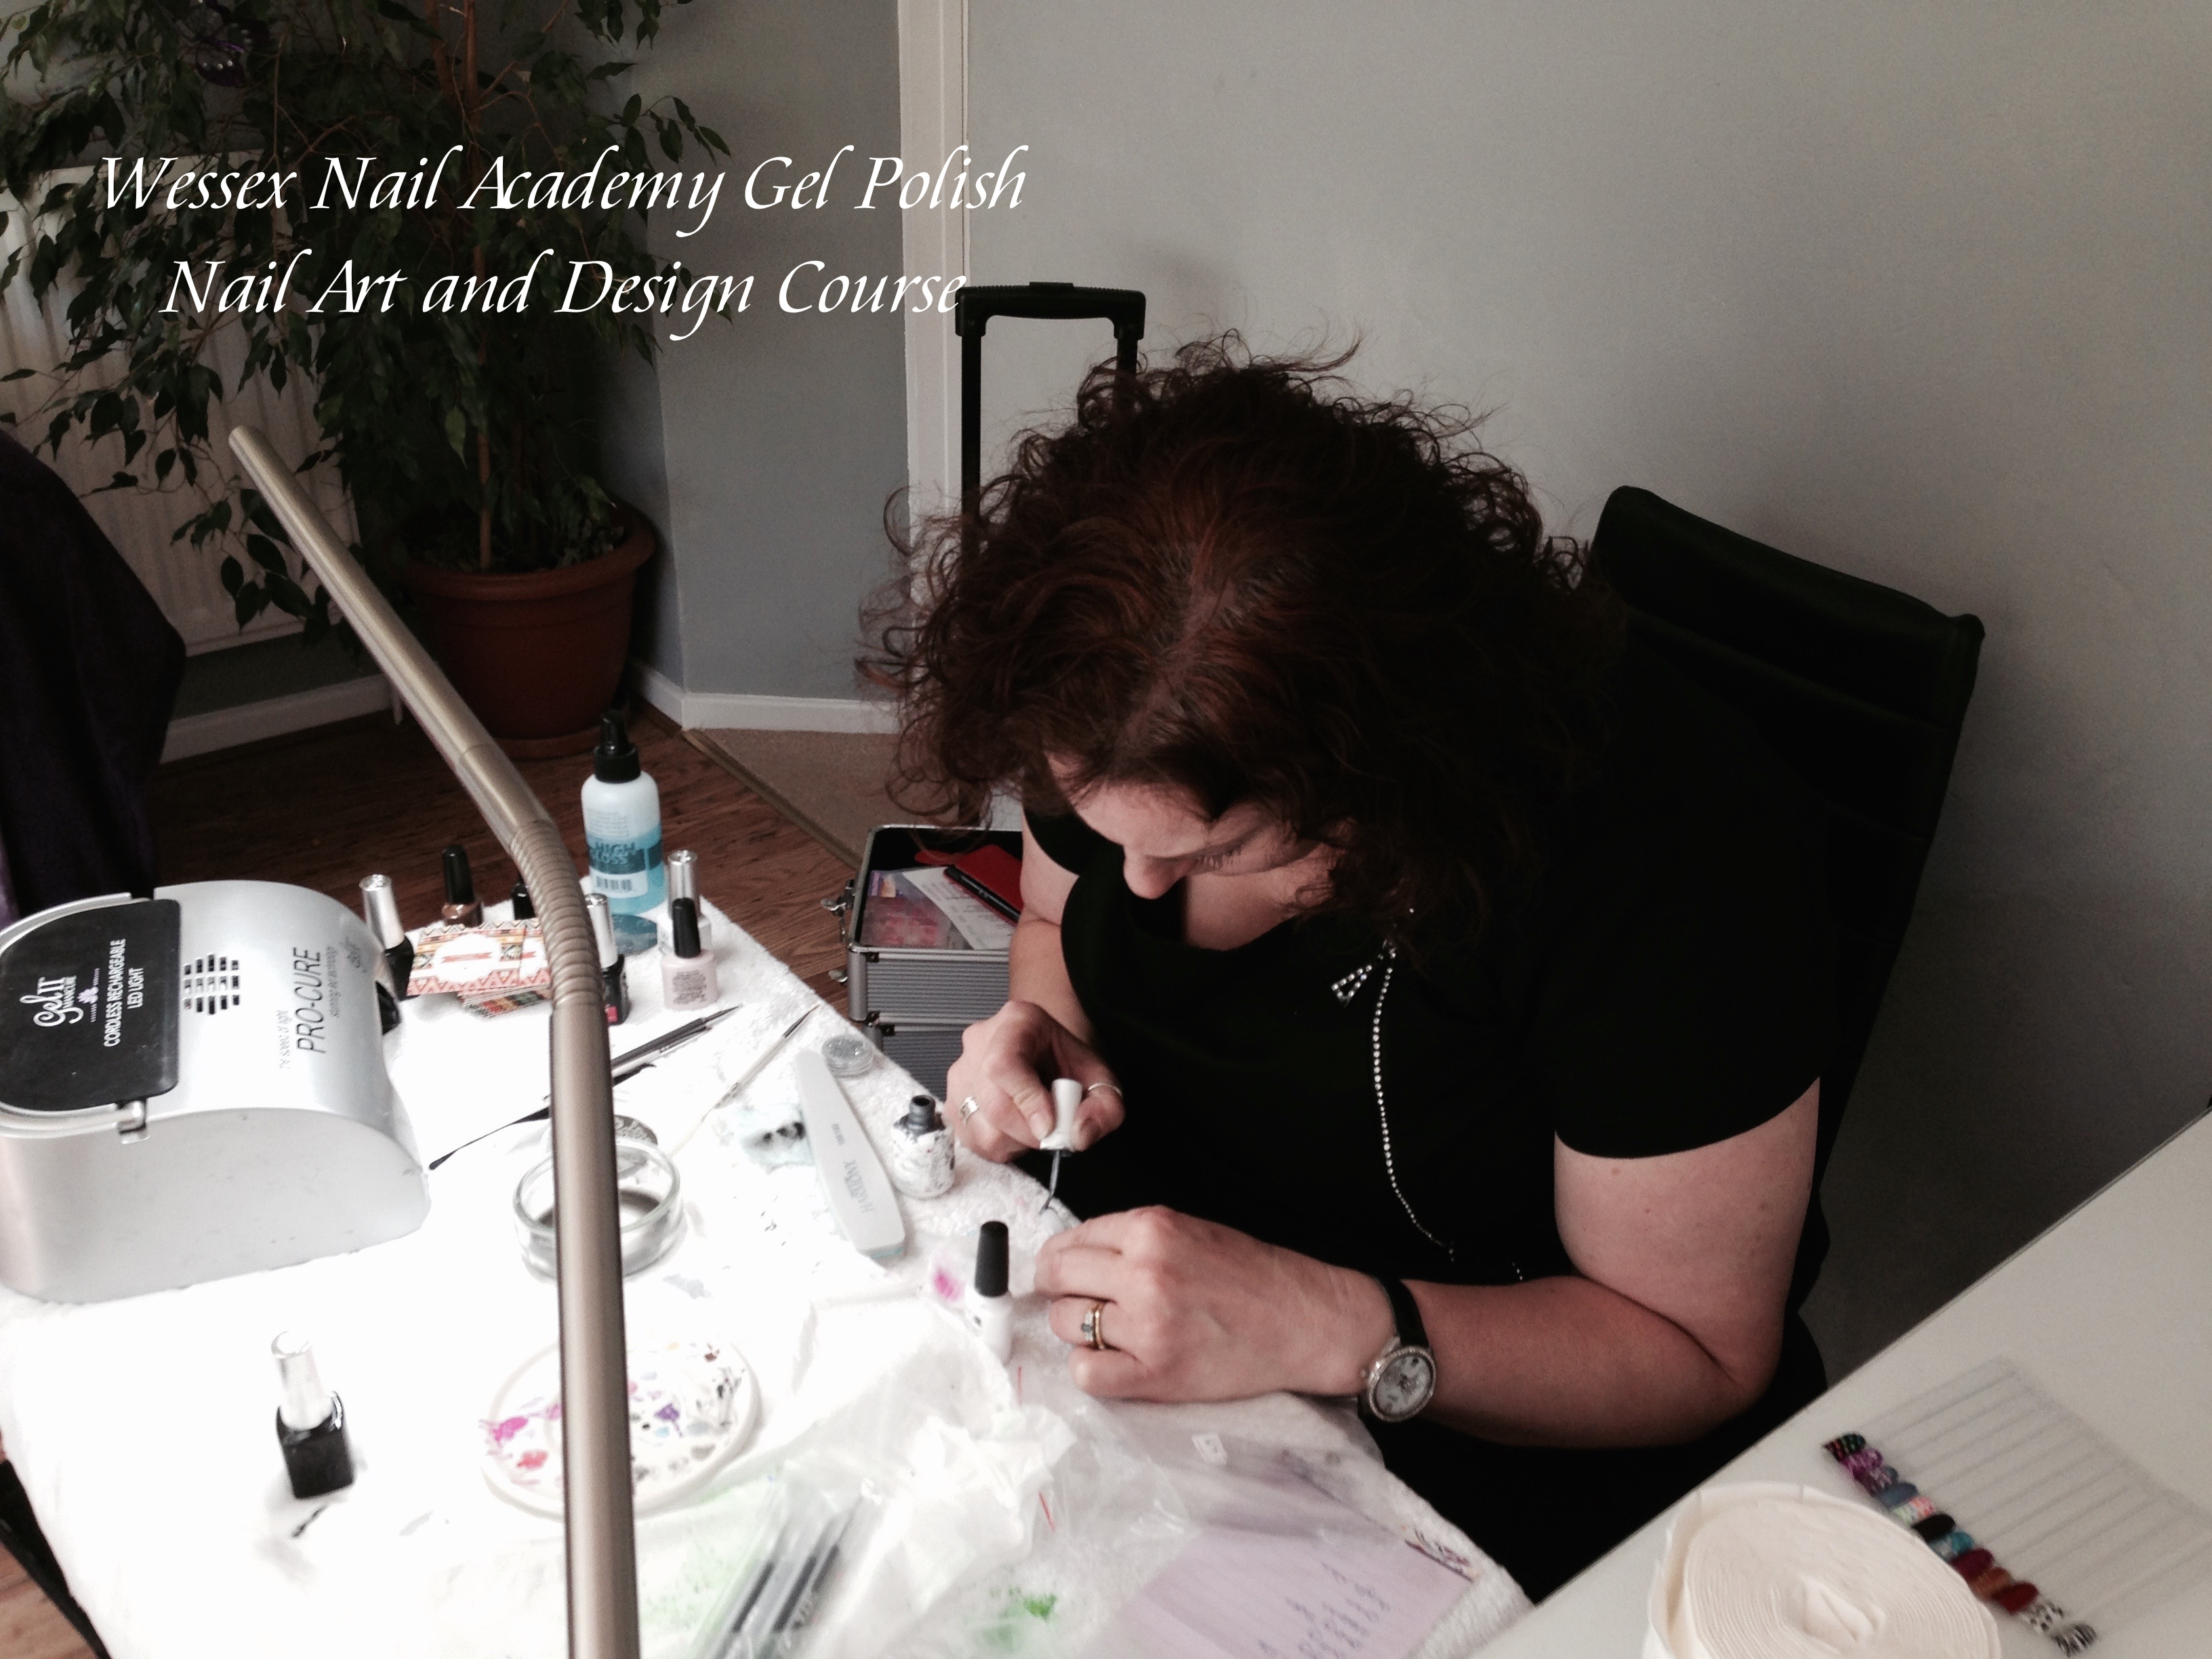 Nail extension training, nail training course, Wessex Nail Academy Okeford Fitzpaine, Dorset